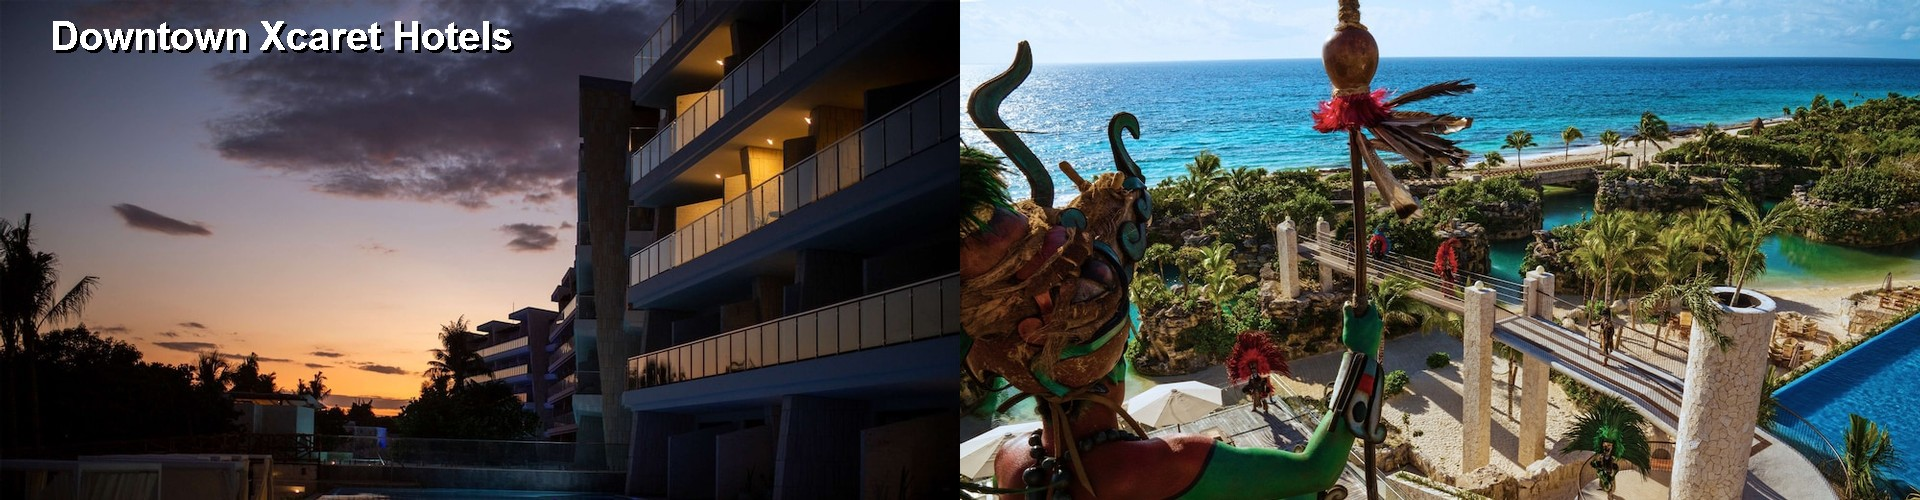 5 Best Hotels near Downtown Xcaret